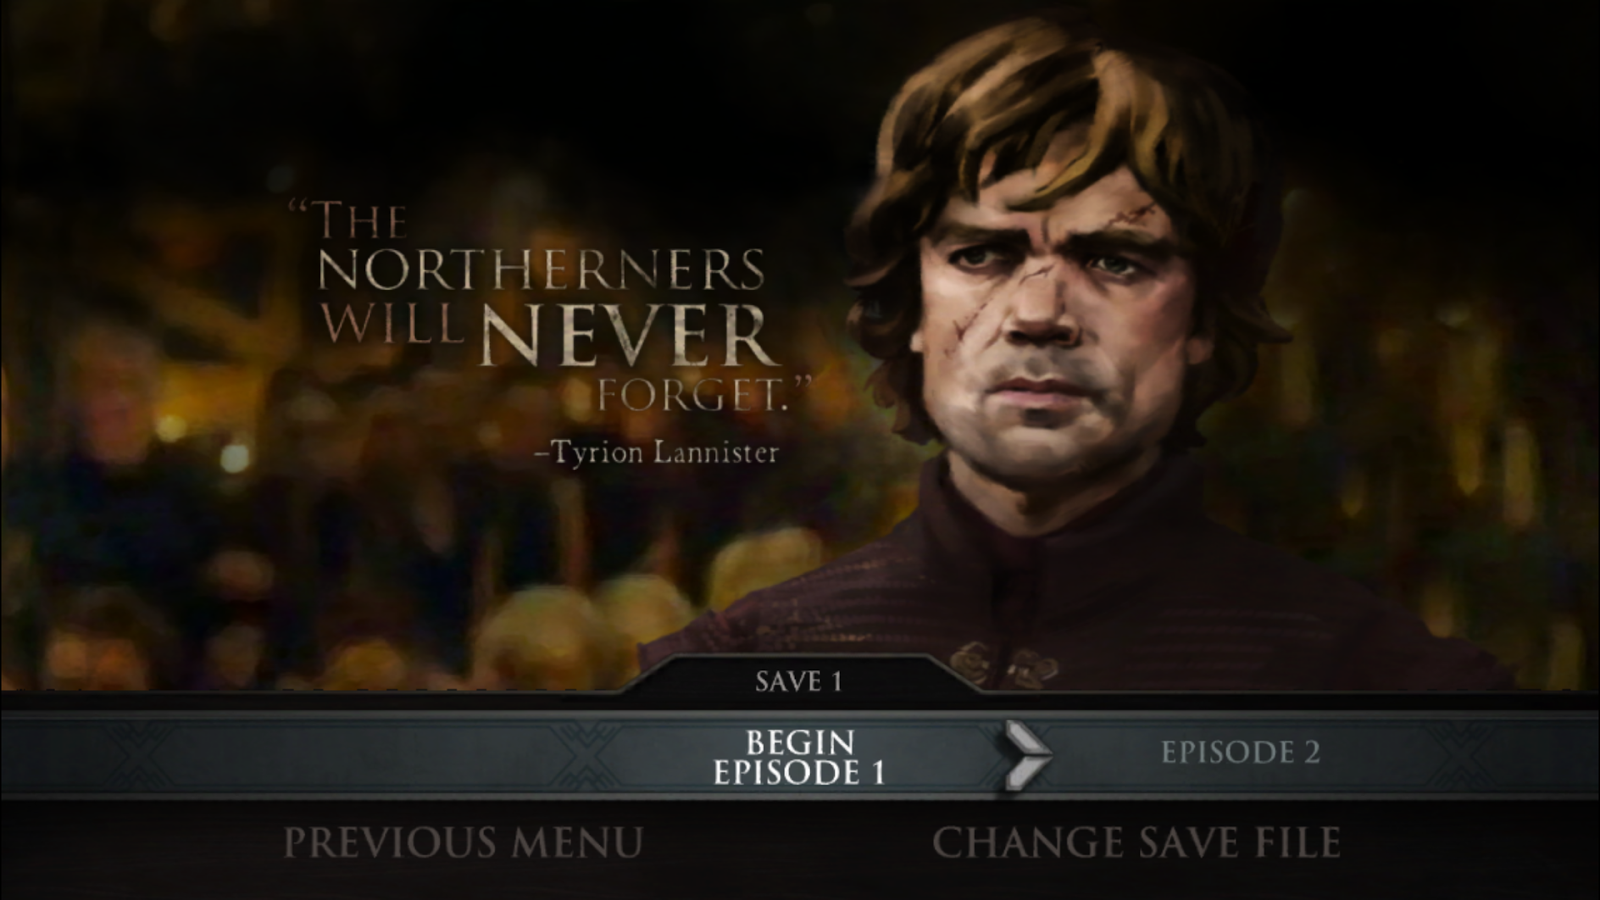 Download Game of Thrones V1.53 APK MOD Adreno + DATA ...